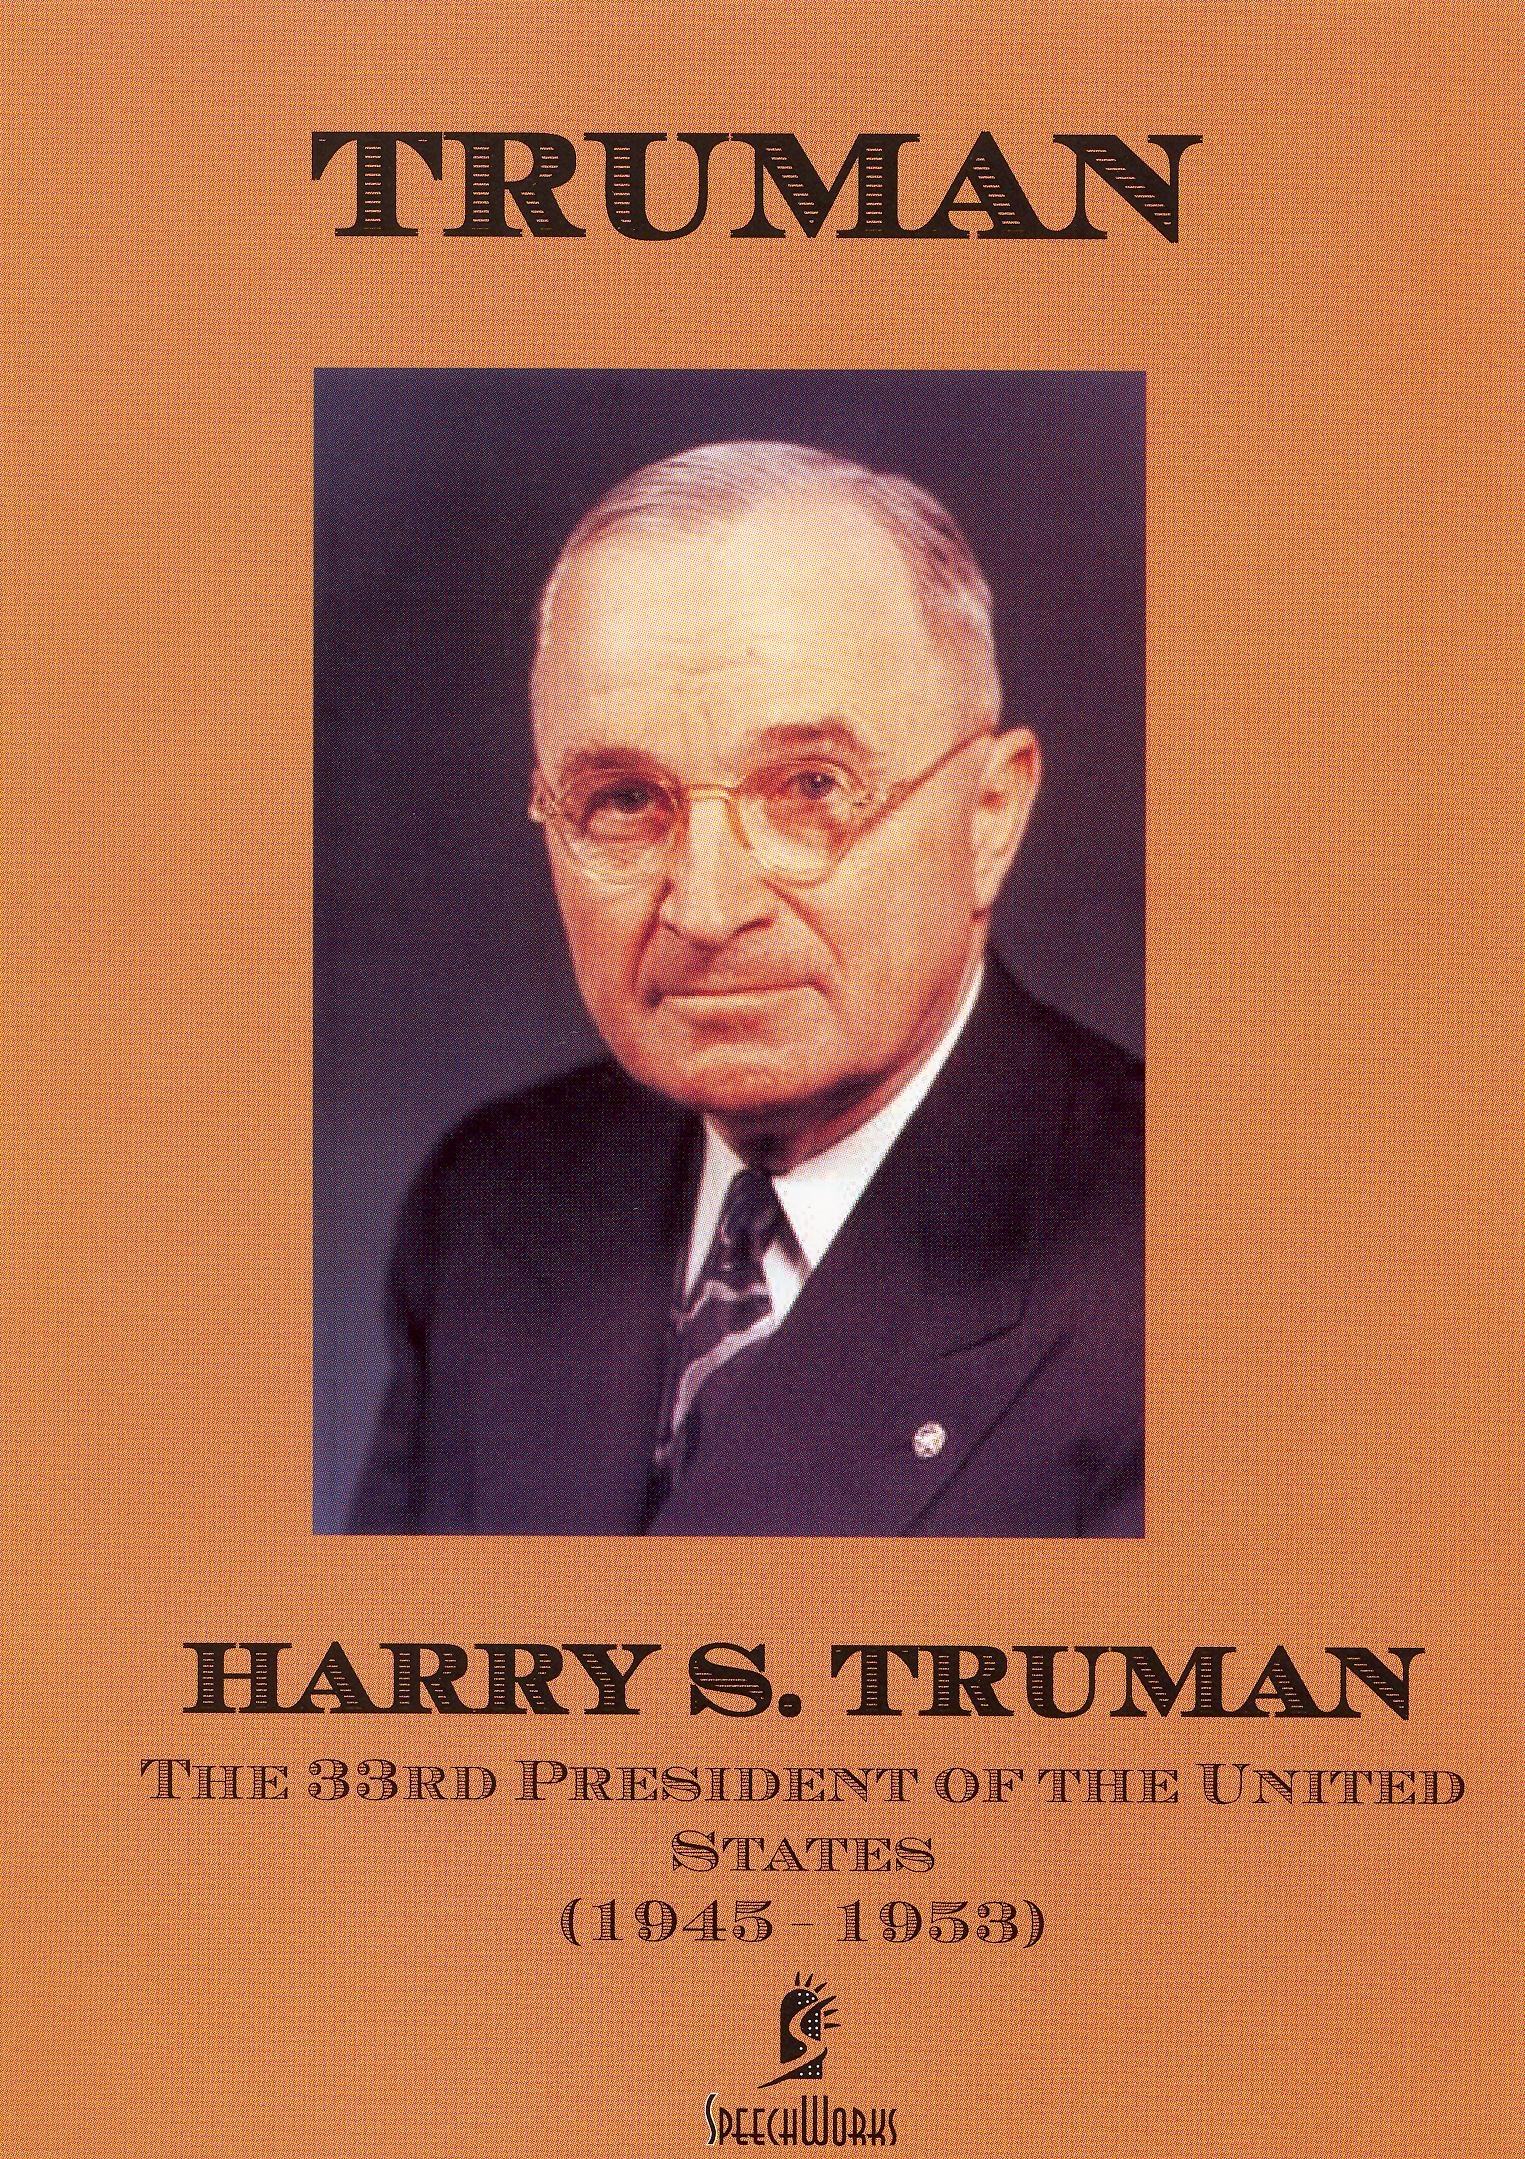 an introduction to the history of the president harry s truman Truman, harry s - 33rd president carefully review the introduction, including president truman the united states history index: truman's tenure of 1945.